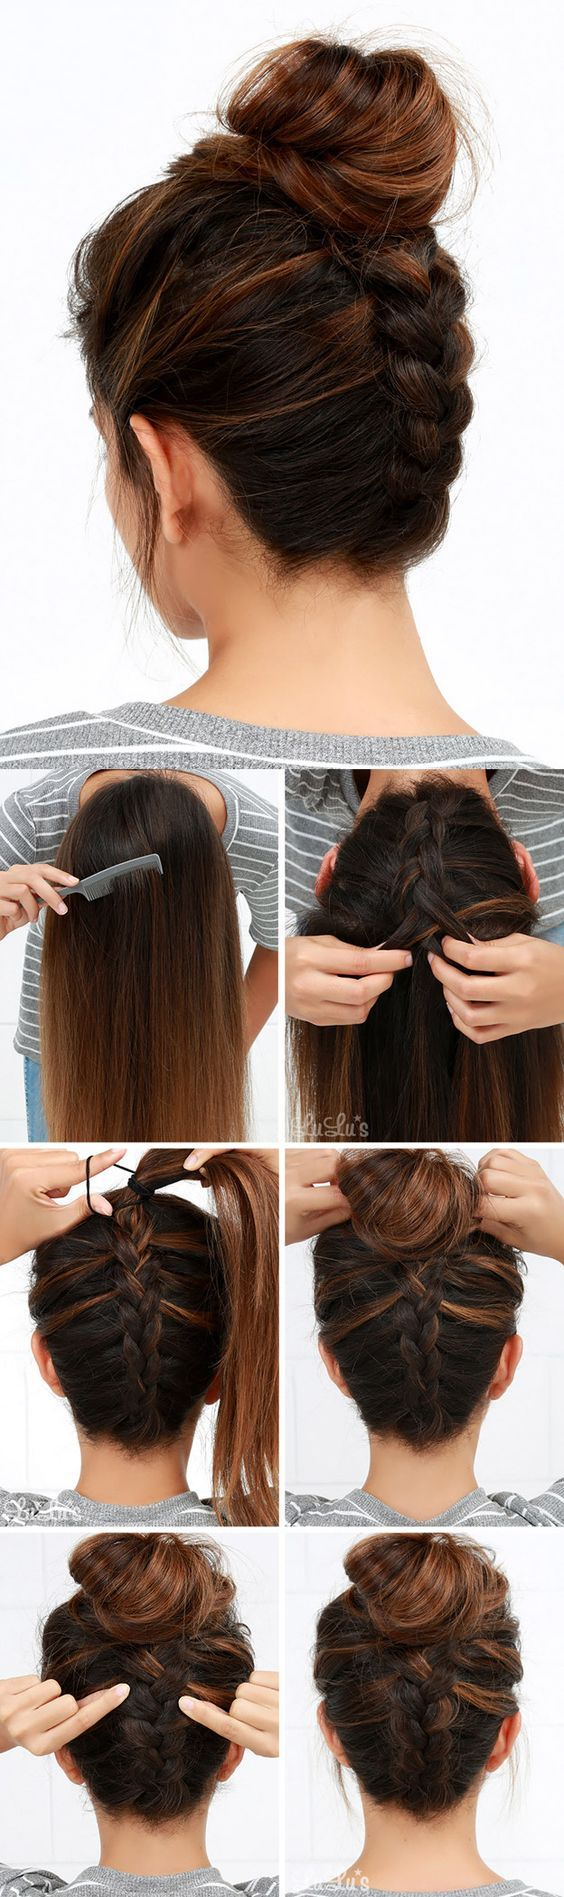 important tips you need to know if you have straightened your hair